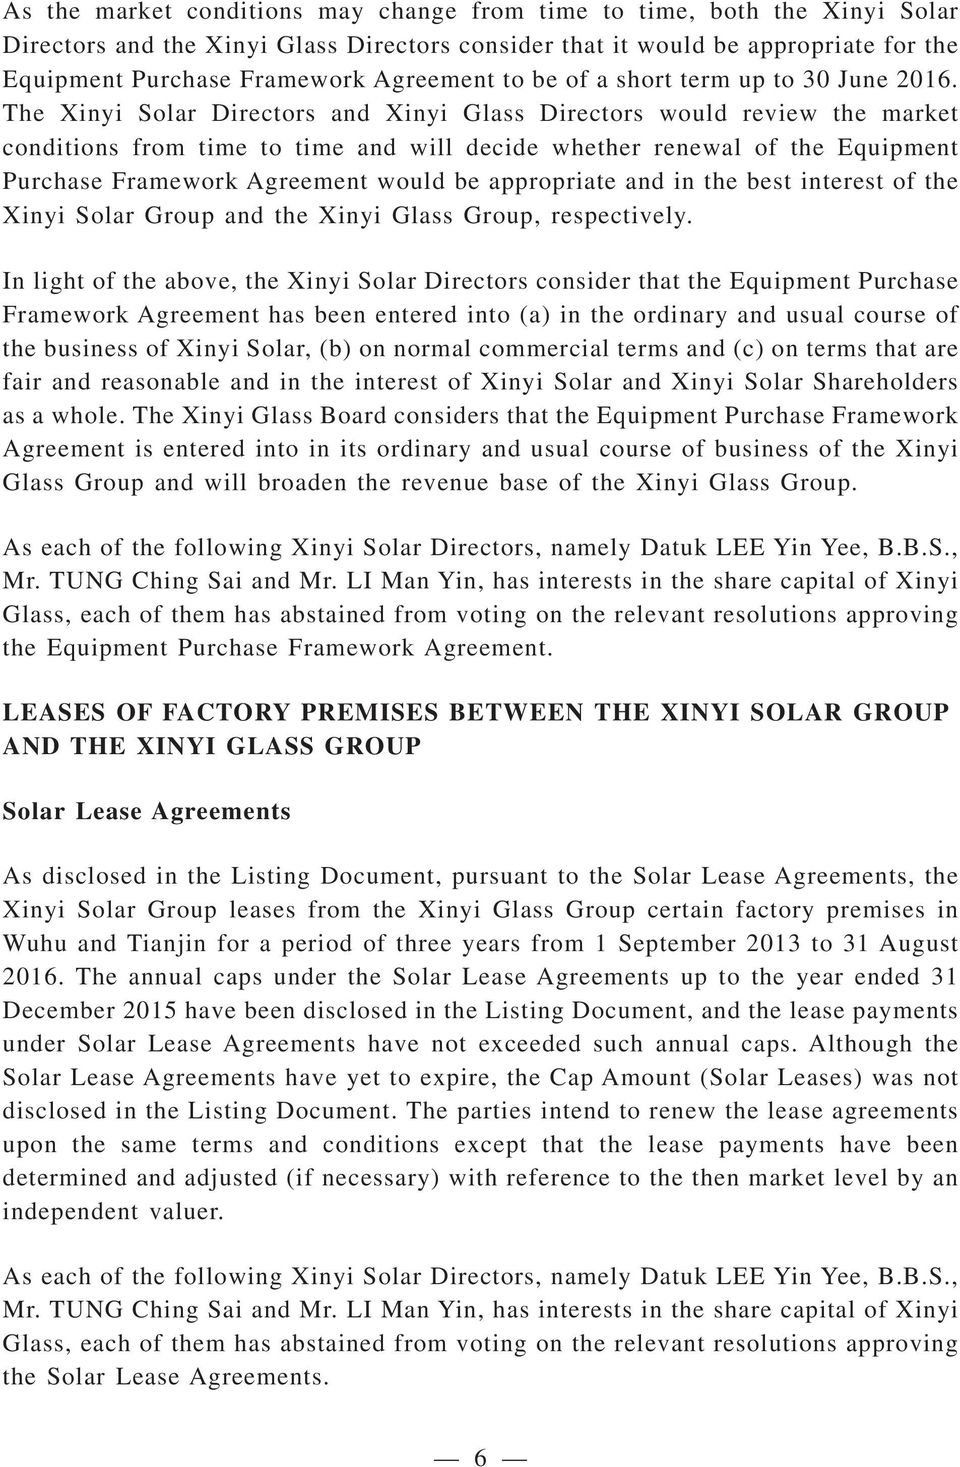 The Xinyi Solar Directors and Xinyi Glass Directors would review the market conditions from time to time and will decide whether renewal of the Equipment Purchase Framework Agreement would be